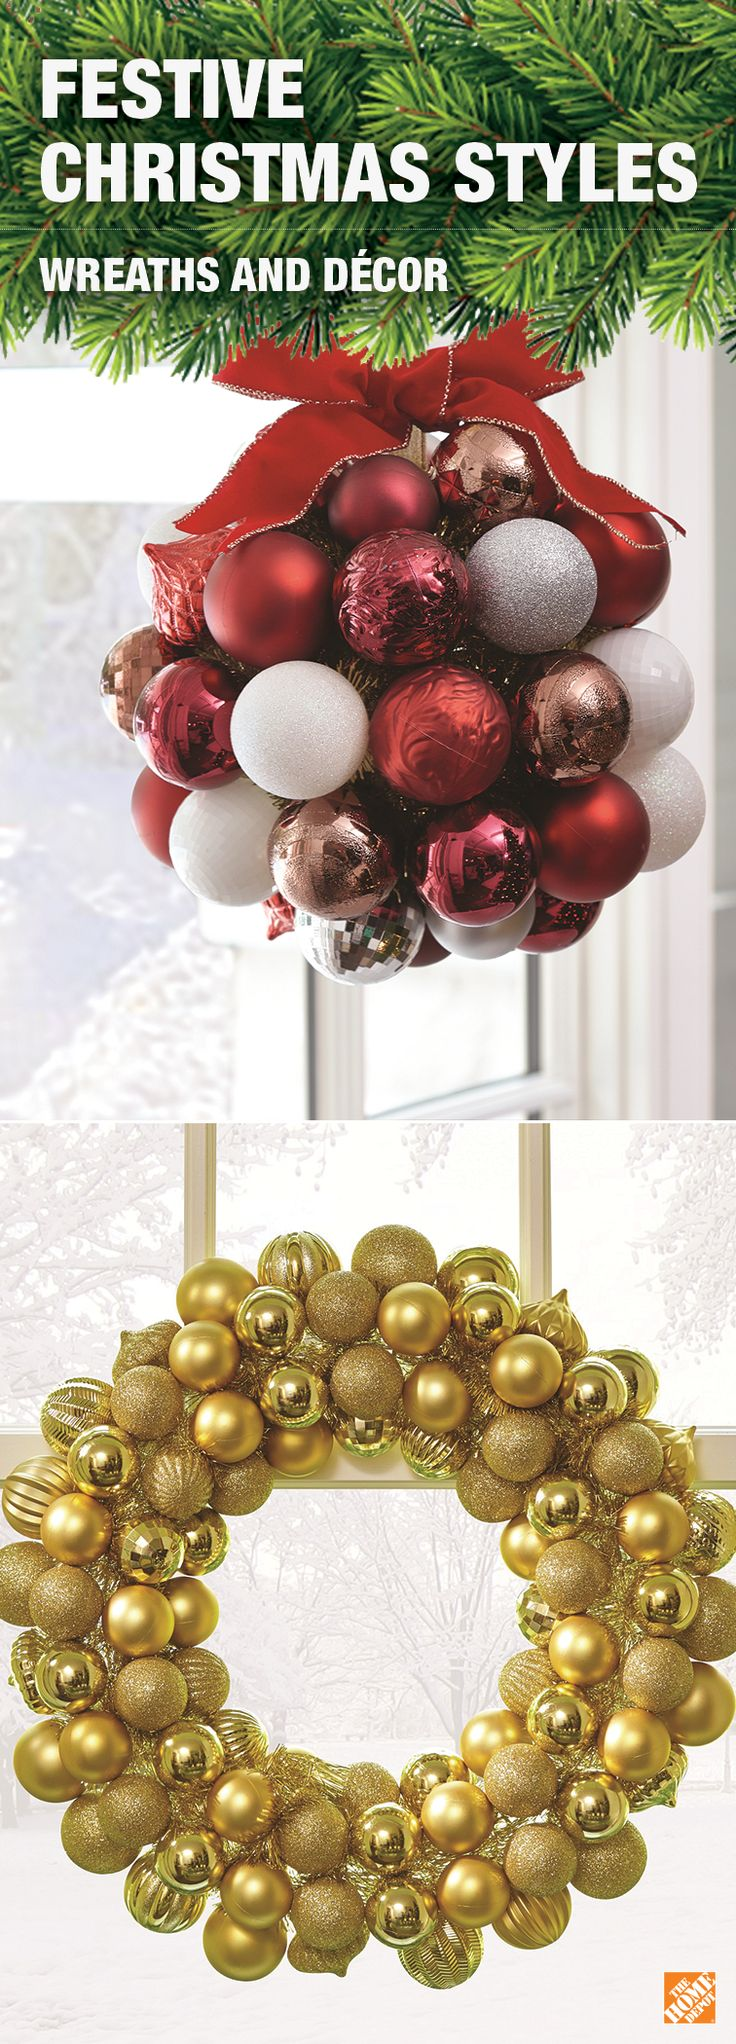 17 Best Images About Holiday Decor 2016 On Pinterest Home